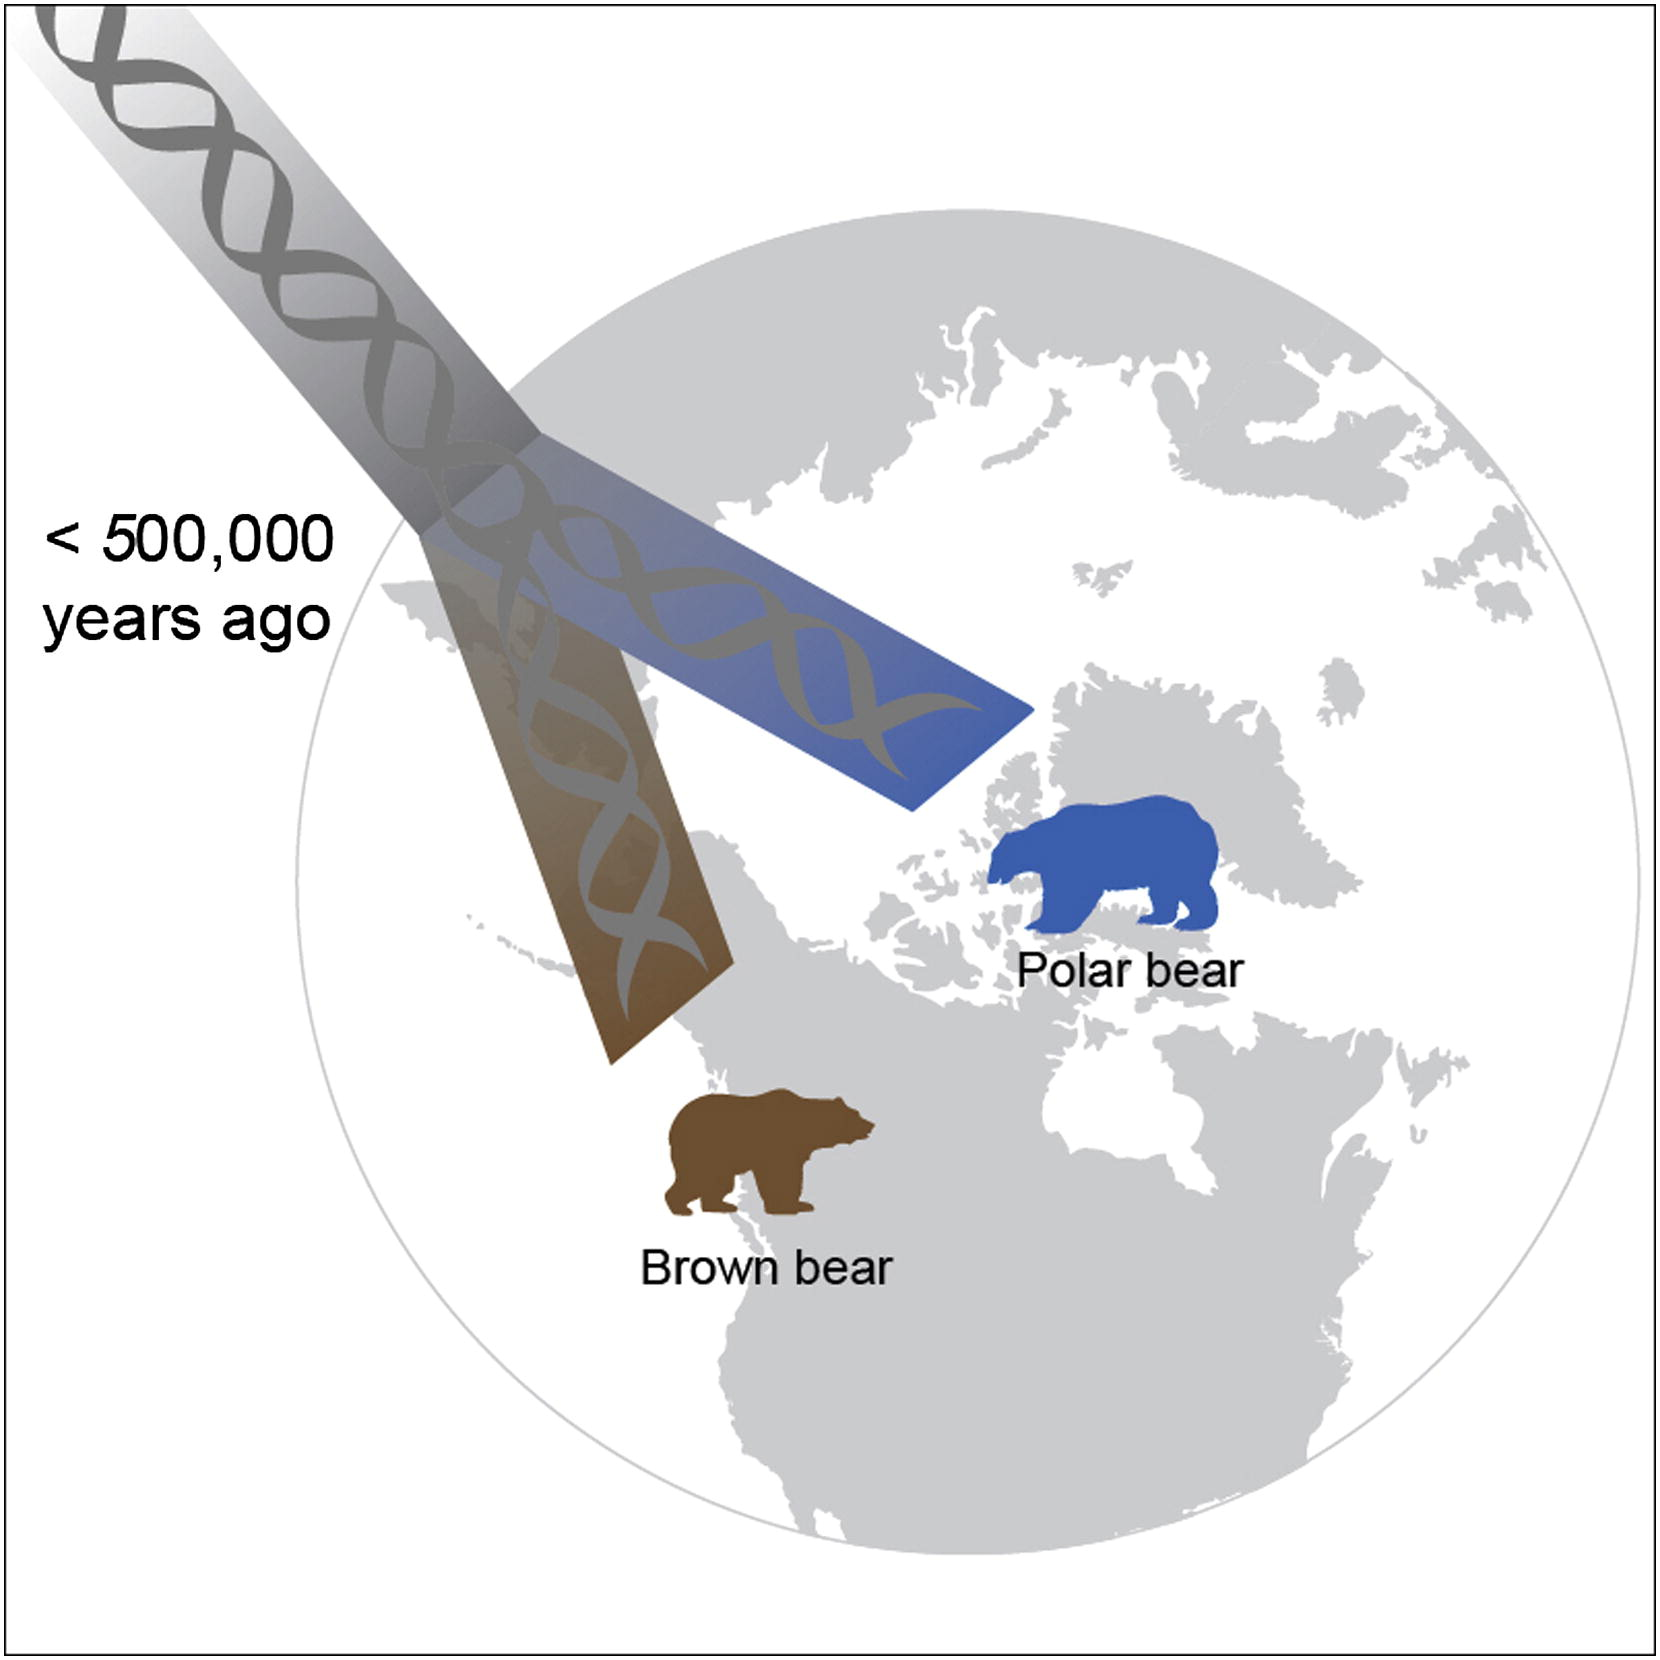 evolution of polar bear lamarck and How would lamarck explain the evolution of brown bears into polar bear (page 1) - evolution - ask a biologist q&a .